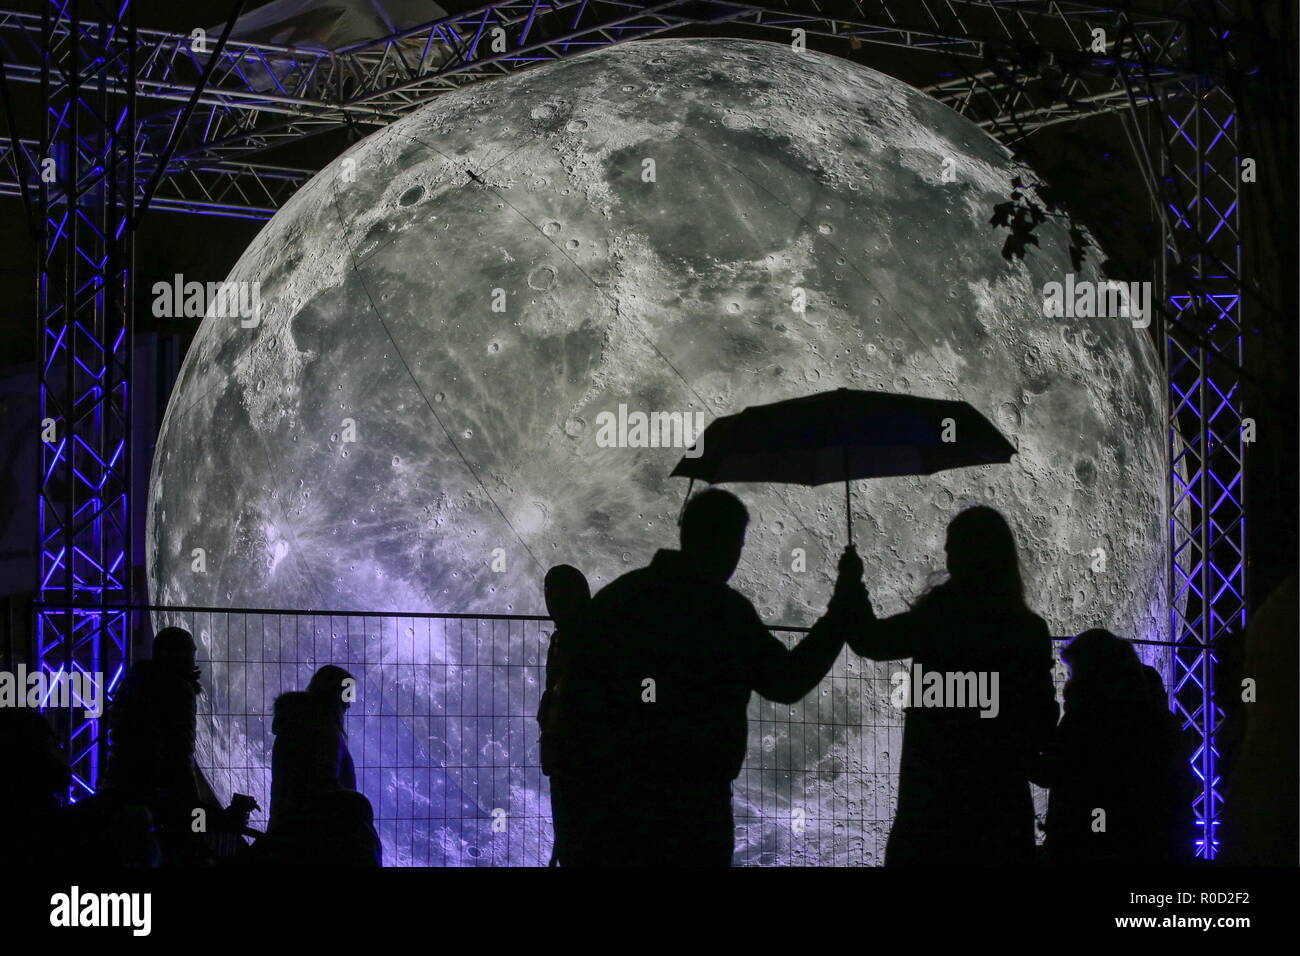 St Petersburg, Russia. 03rd Nov, 2018. ST PETERSBURG, RUSSIA - NOVEMBER 3, 2018: A view of the Shining Moon light installation erected in front of the Saint Petersburg Sports and Concert Complex as part of the 2018 St Petersburg Light Festival. Peter Kovalev/TASS Credit: ITAR-TASS News Agency/Alamy Live News - Stock Image